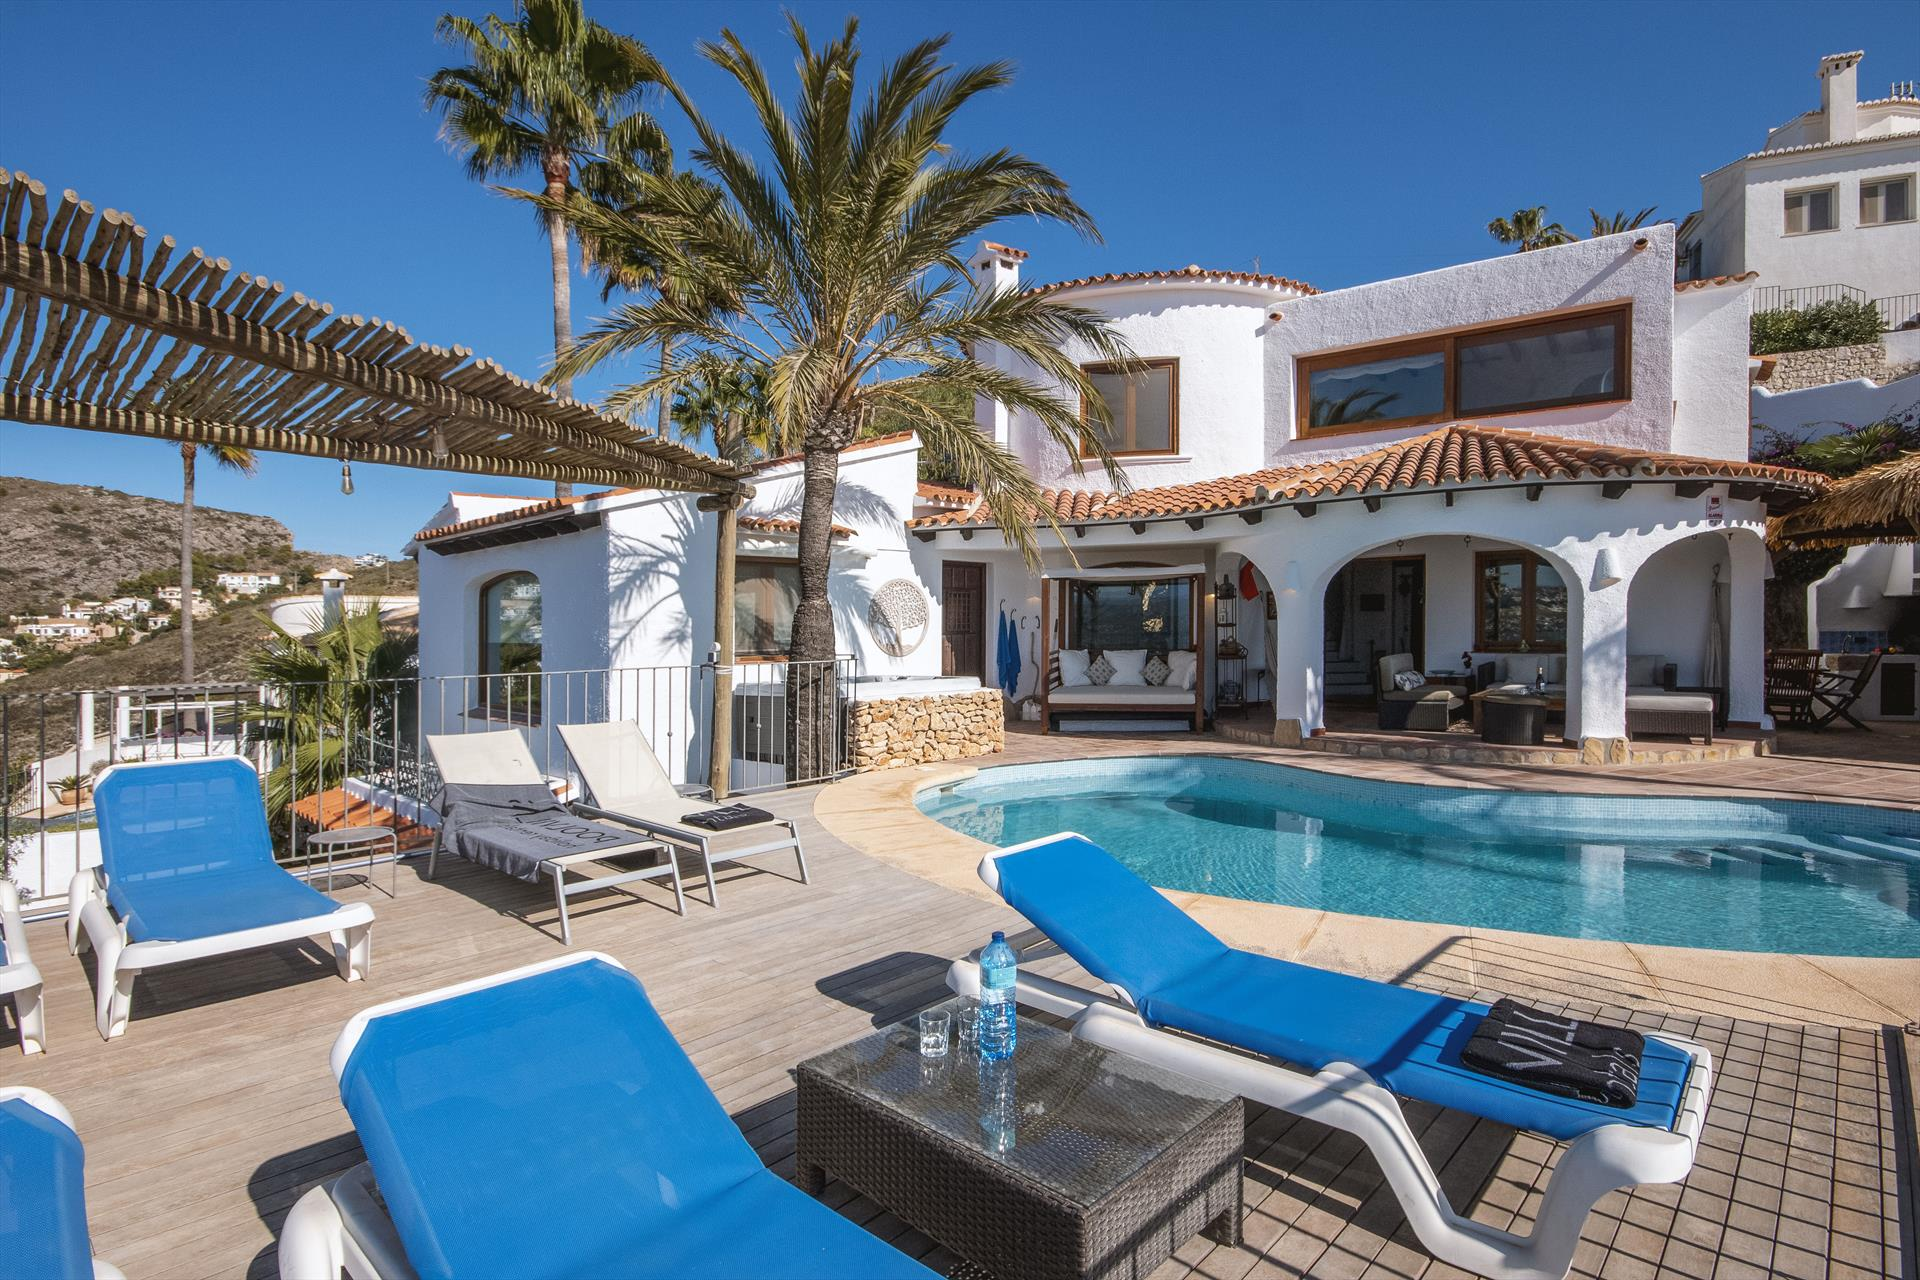 Mira al Mar 6 pax,Large and comfortable villa  with private pool in Moraira, on the Costa Blanca, Spain for 6 persons.....